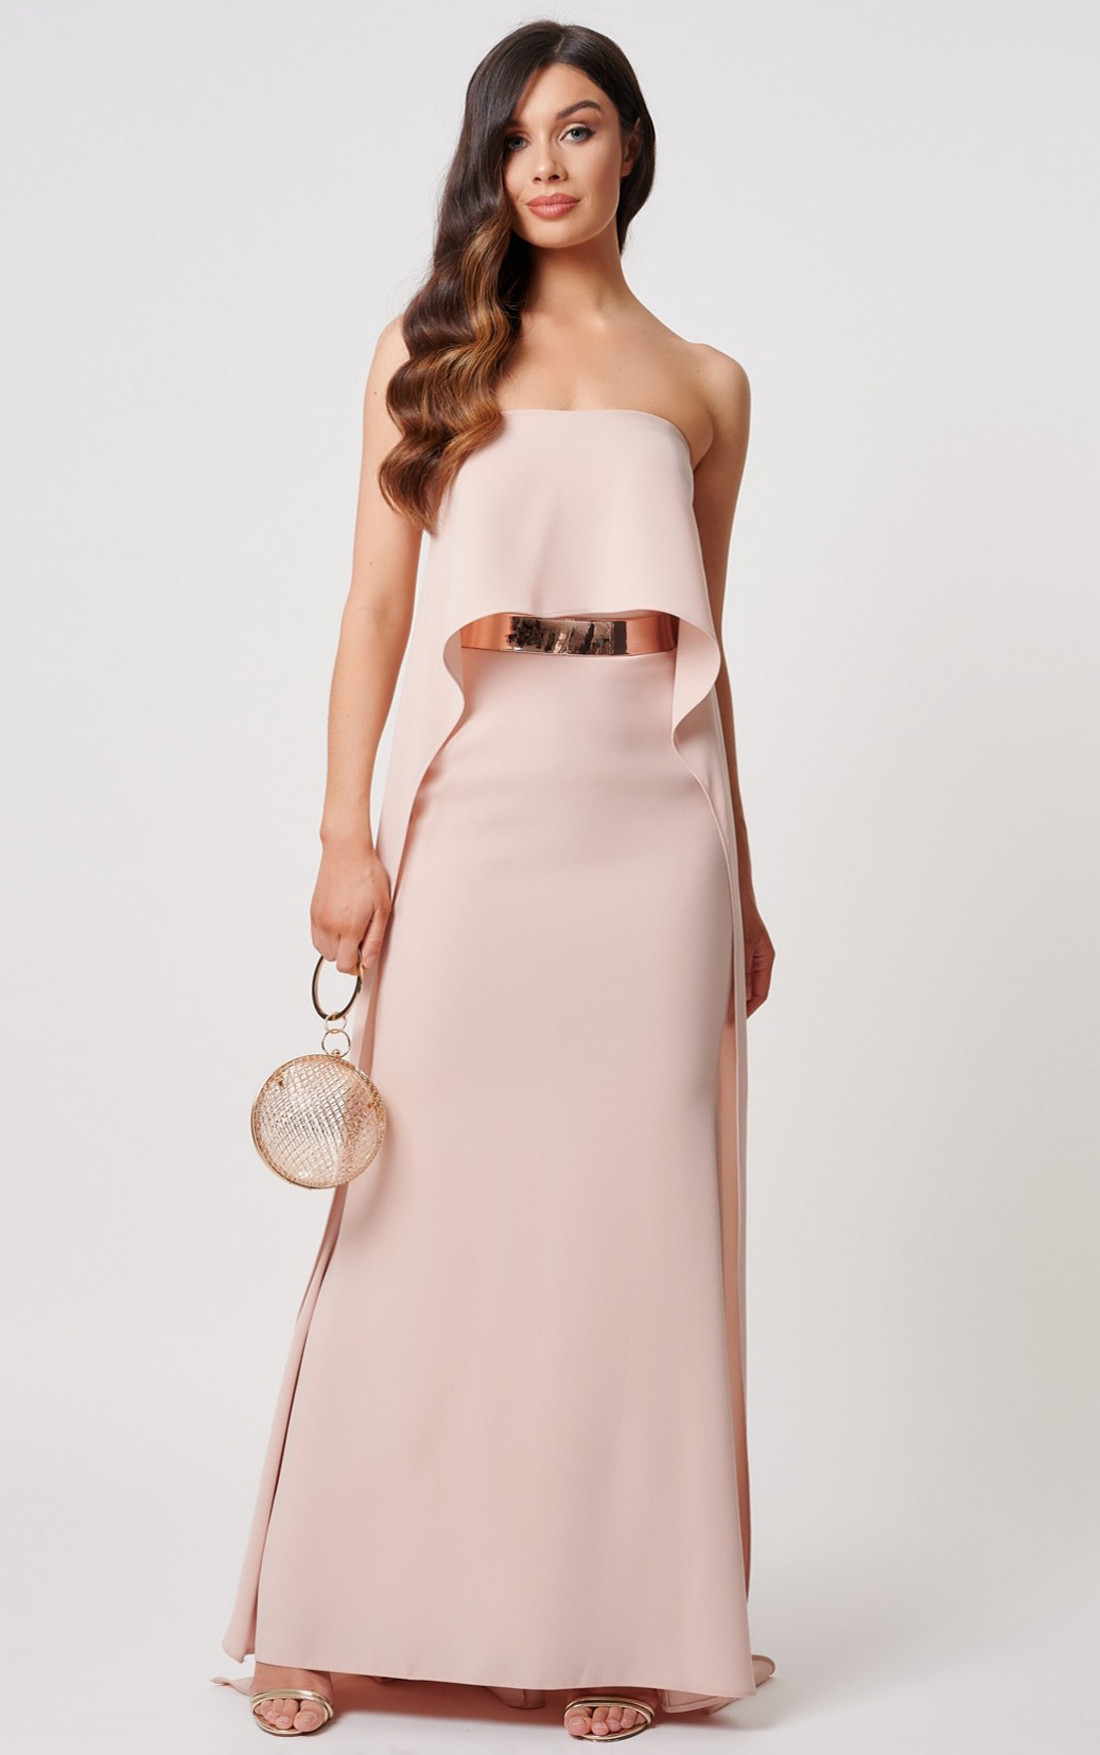 Forever Unique - Elizabeth Nude Bardot Cape Maxi Dress With Gold Belt (MN208904)